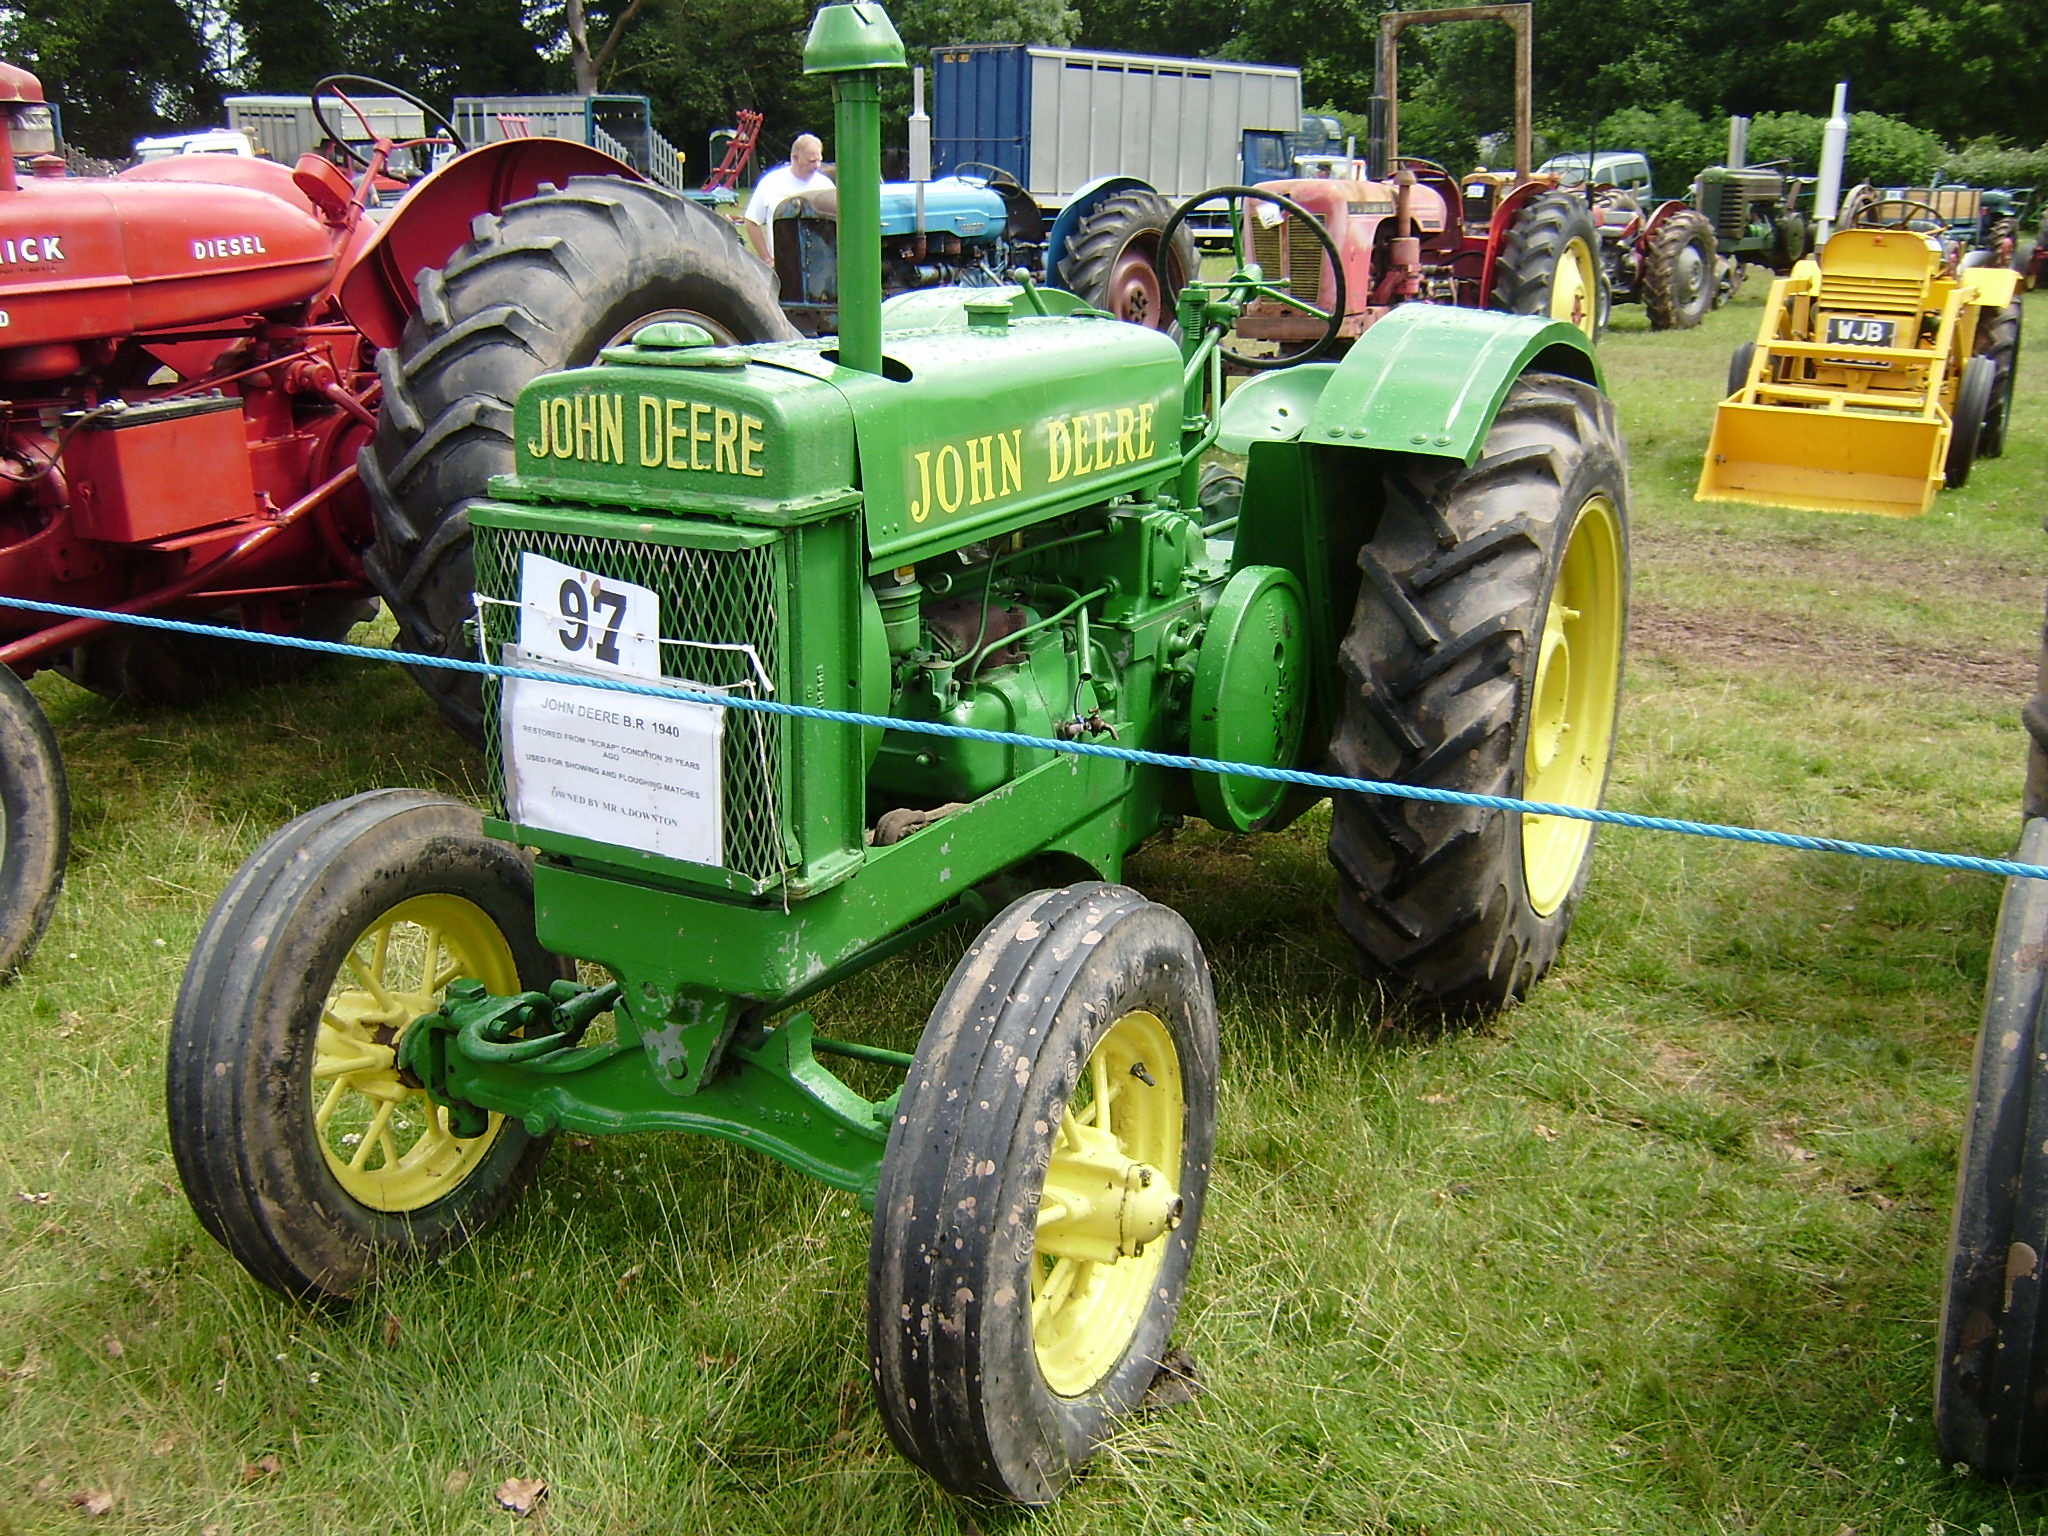 List of John Deere tractors | Tractor & Construction Plant ... John Deere Model Wiring Diagram on farmall super mta wiring diagram, john deere 50 wiring diagram, john deere model 70 engine,